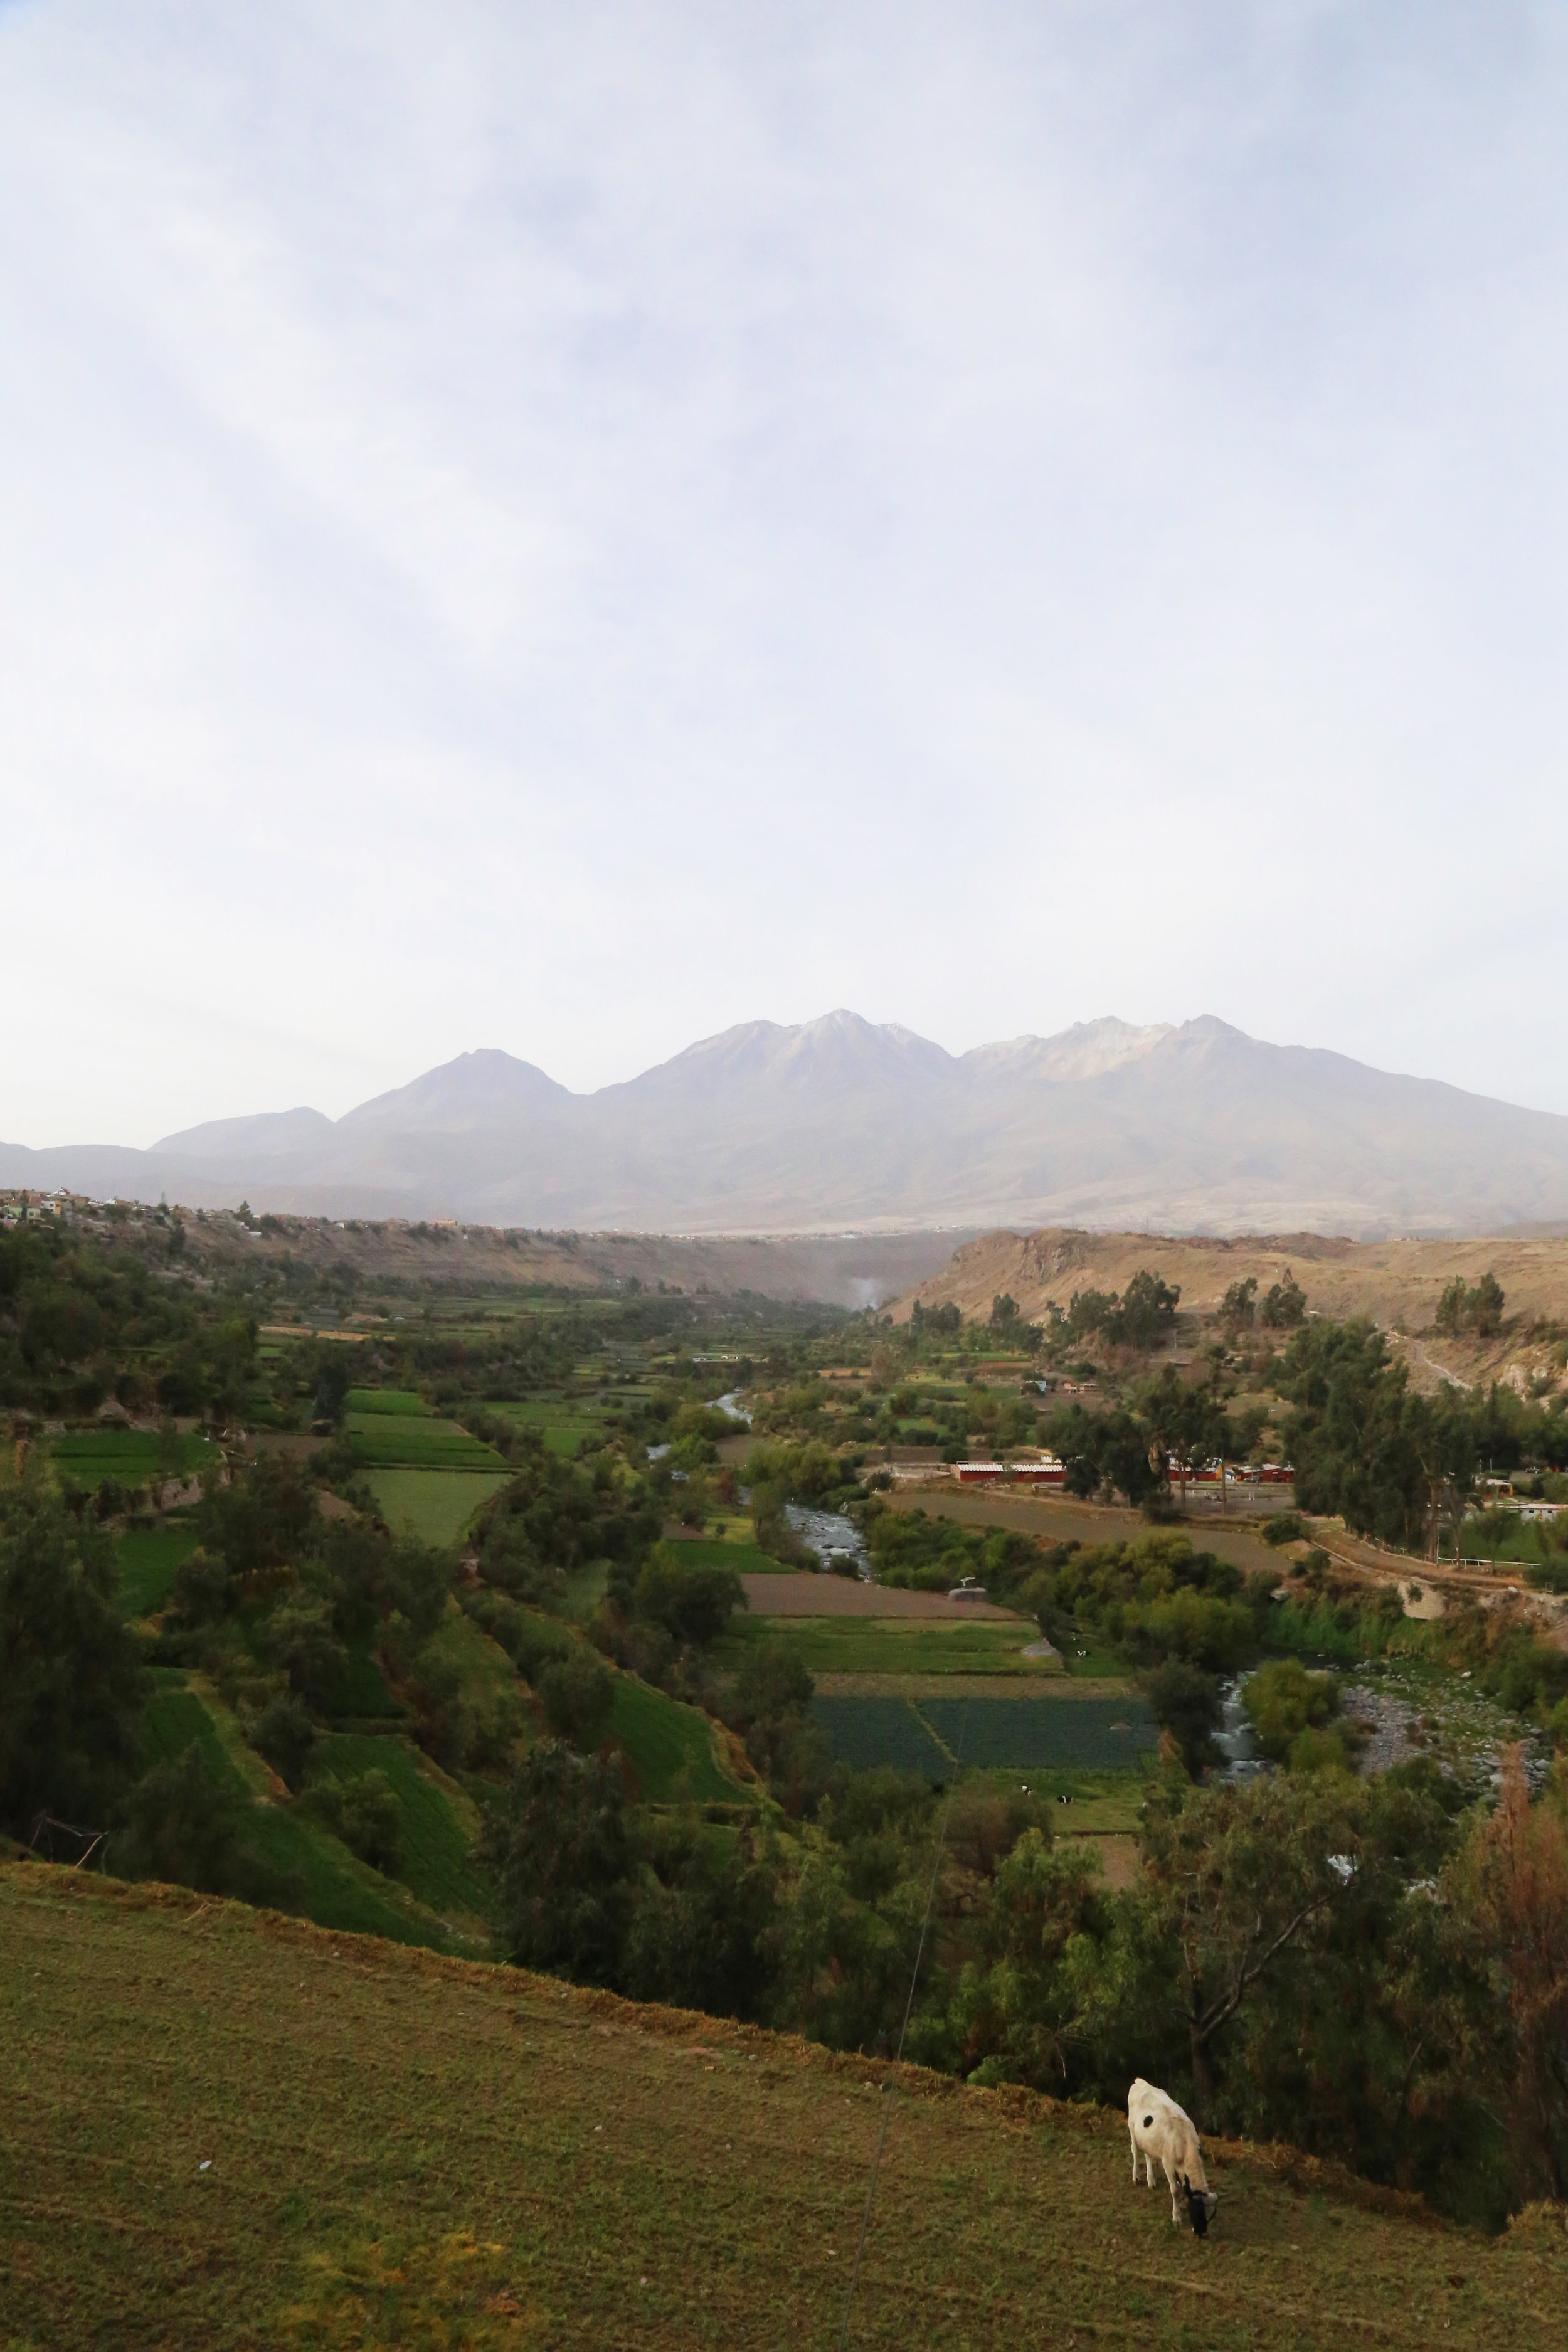 The Chanchani volcano is one of three visible from Arequipa. This photo was taken just outside the city at a viewpoint called Mirador Carmen Alto.